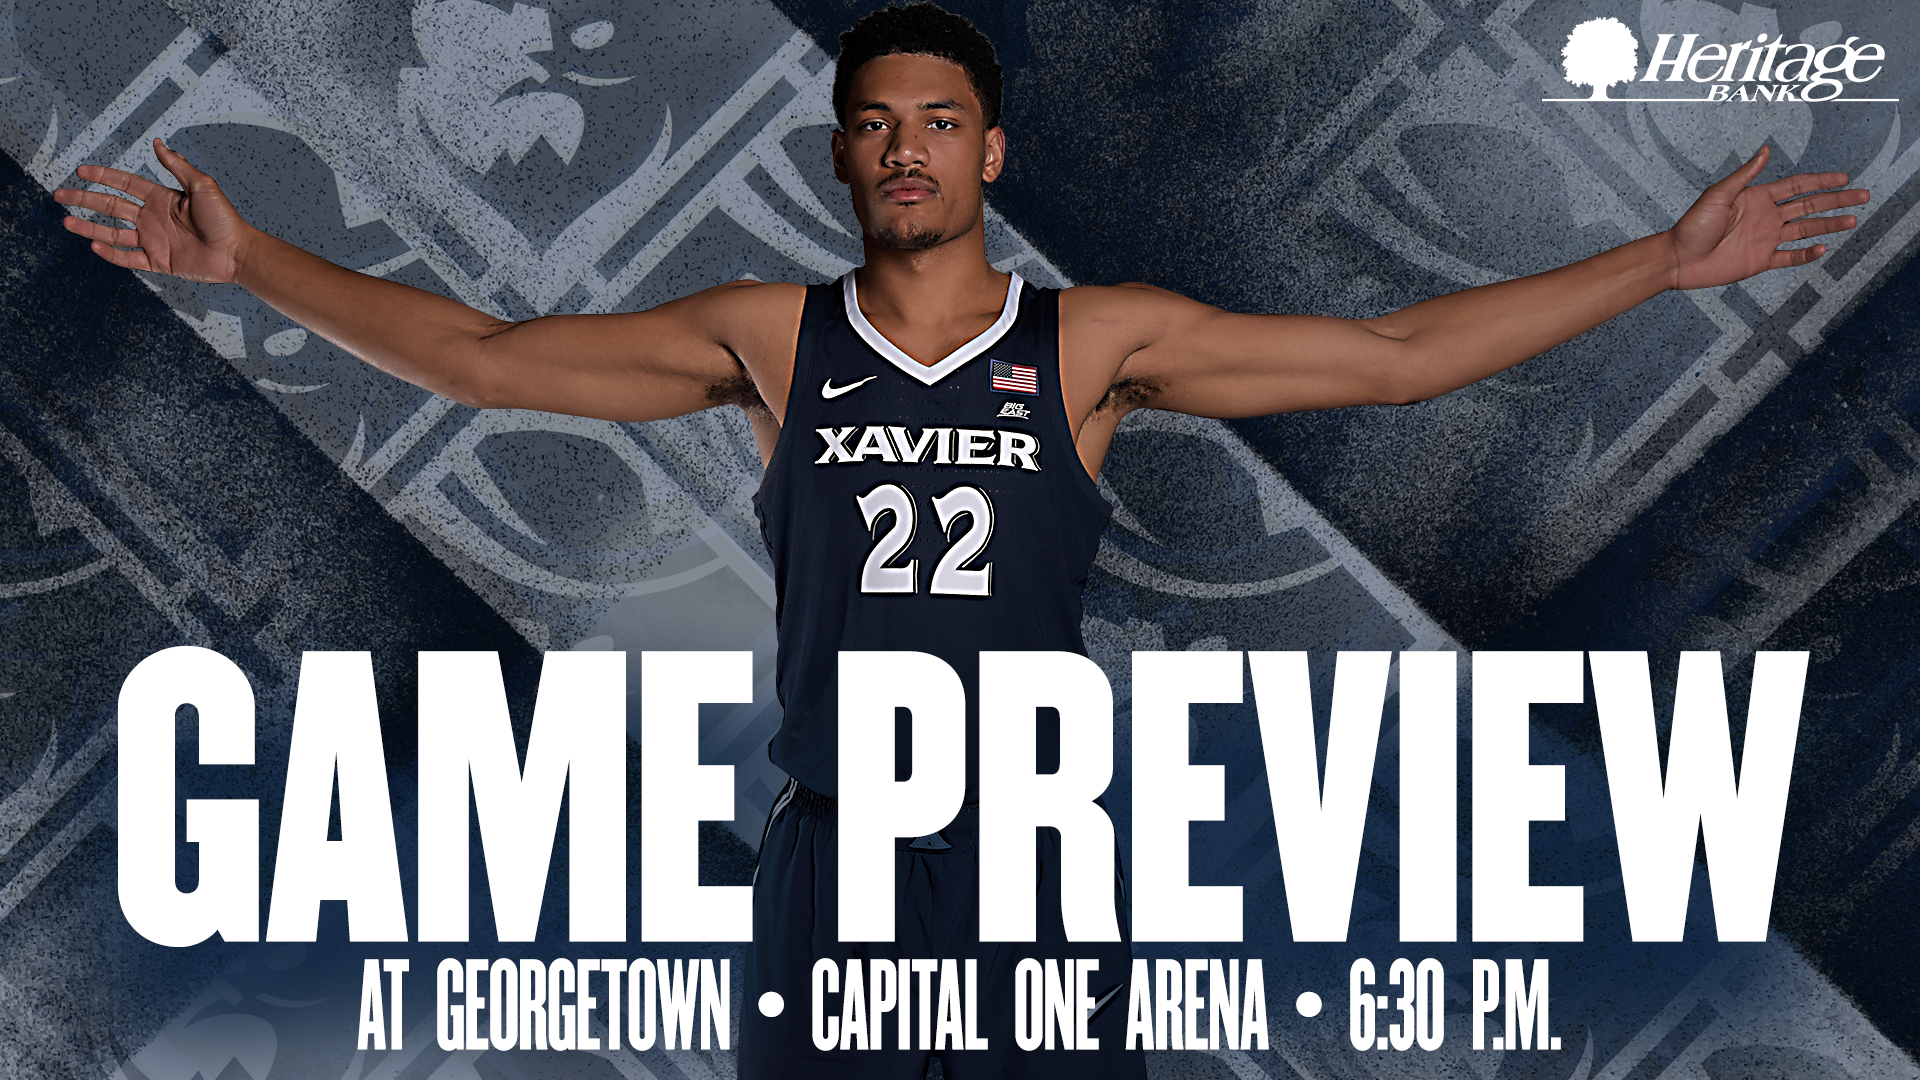 Mbb_preview_at_georgetown